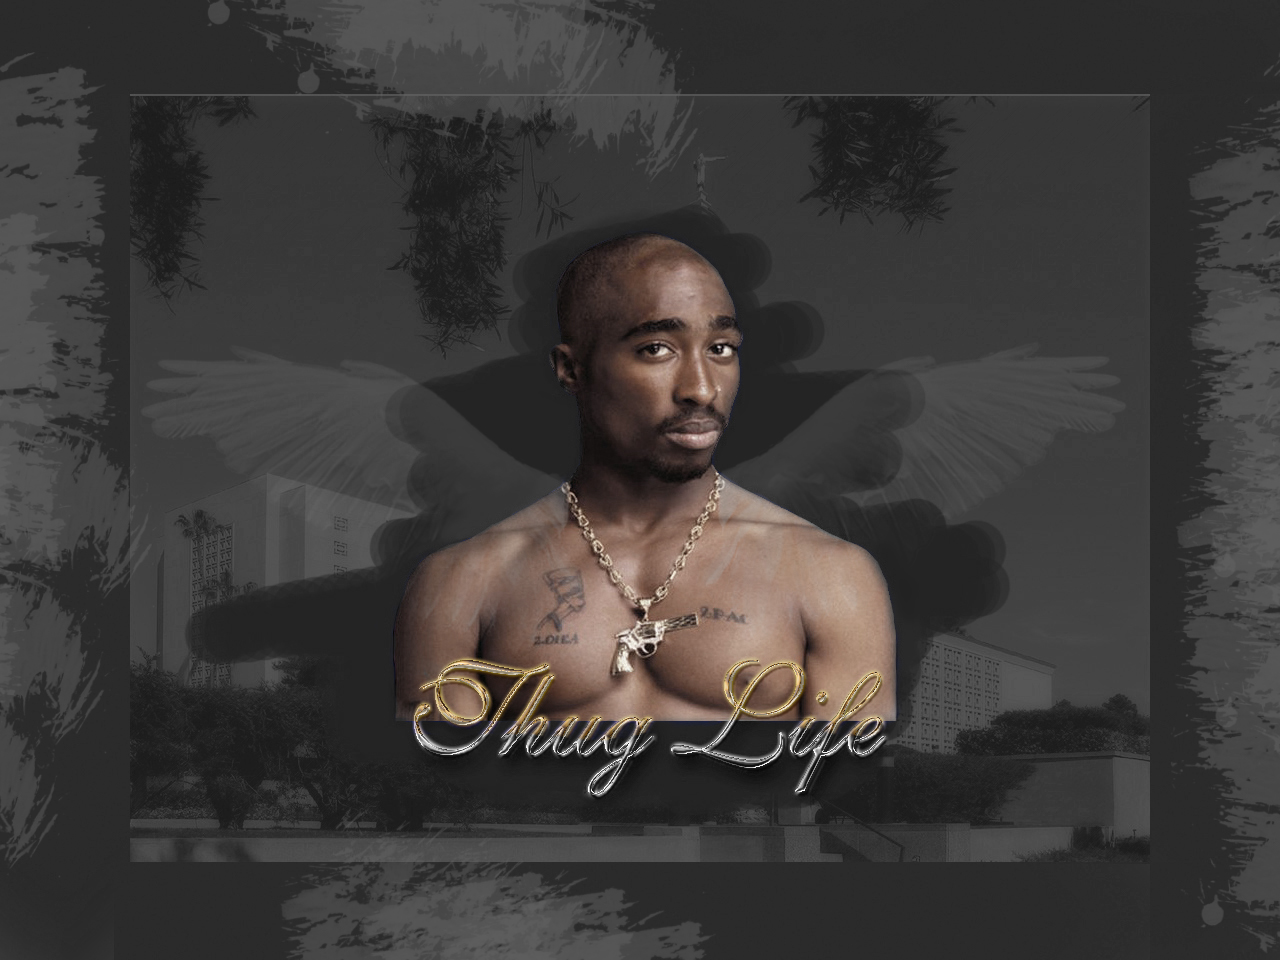 2pac wallpapers 2pac stock photos image 2pac wallpapers and stock photos altavistaventures Gallery